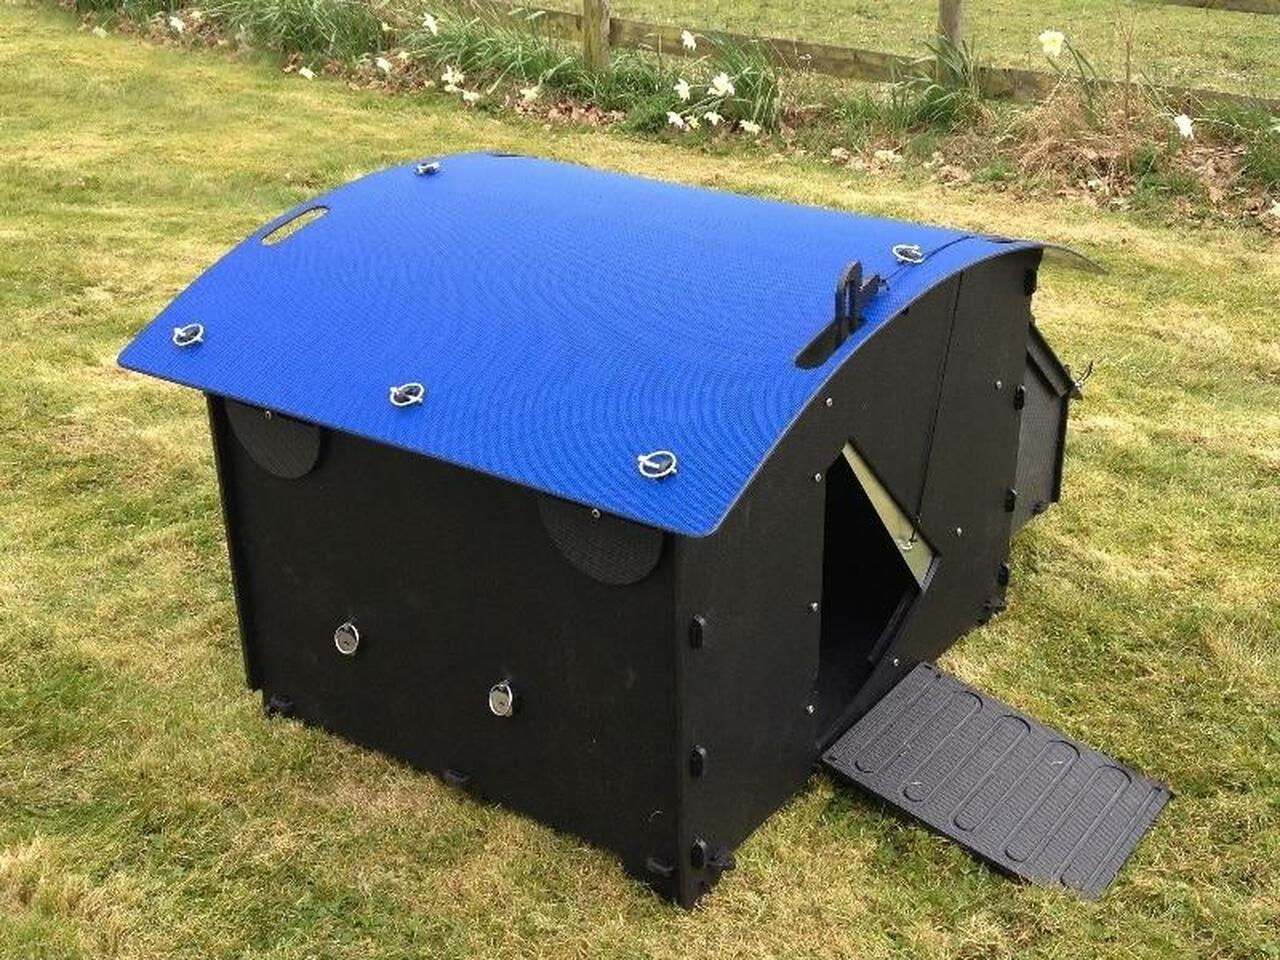 Recycled_Plastic_Chicken_Coop_House_Large_8-15_Chicken-Blue_Roof